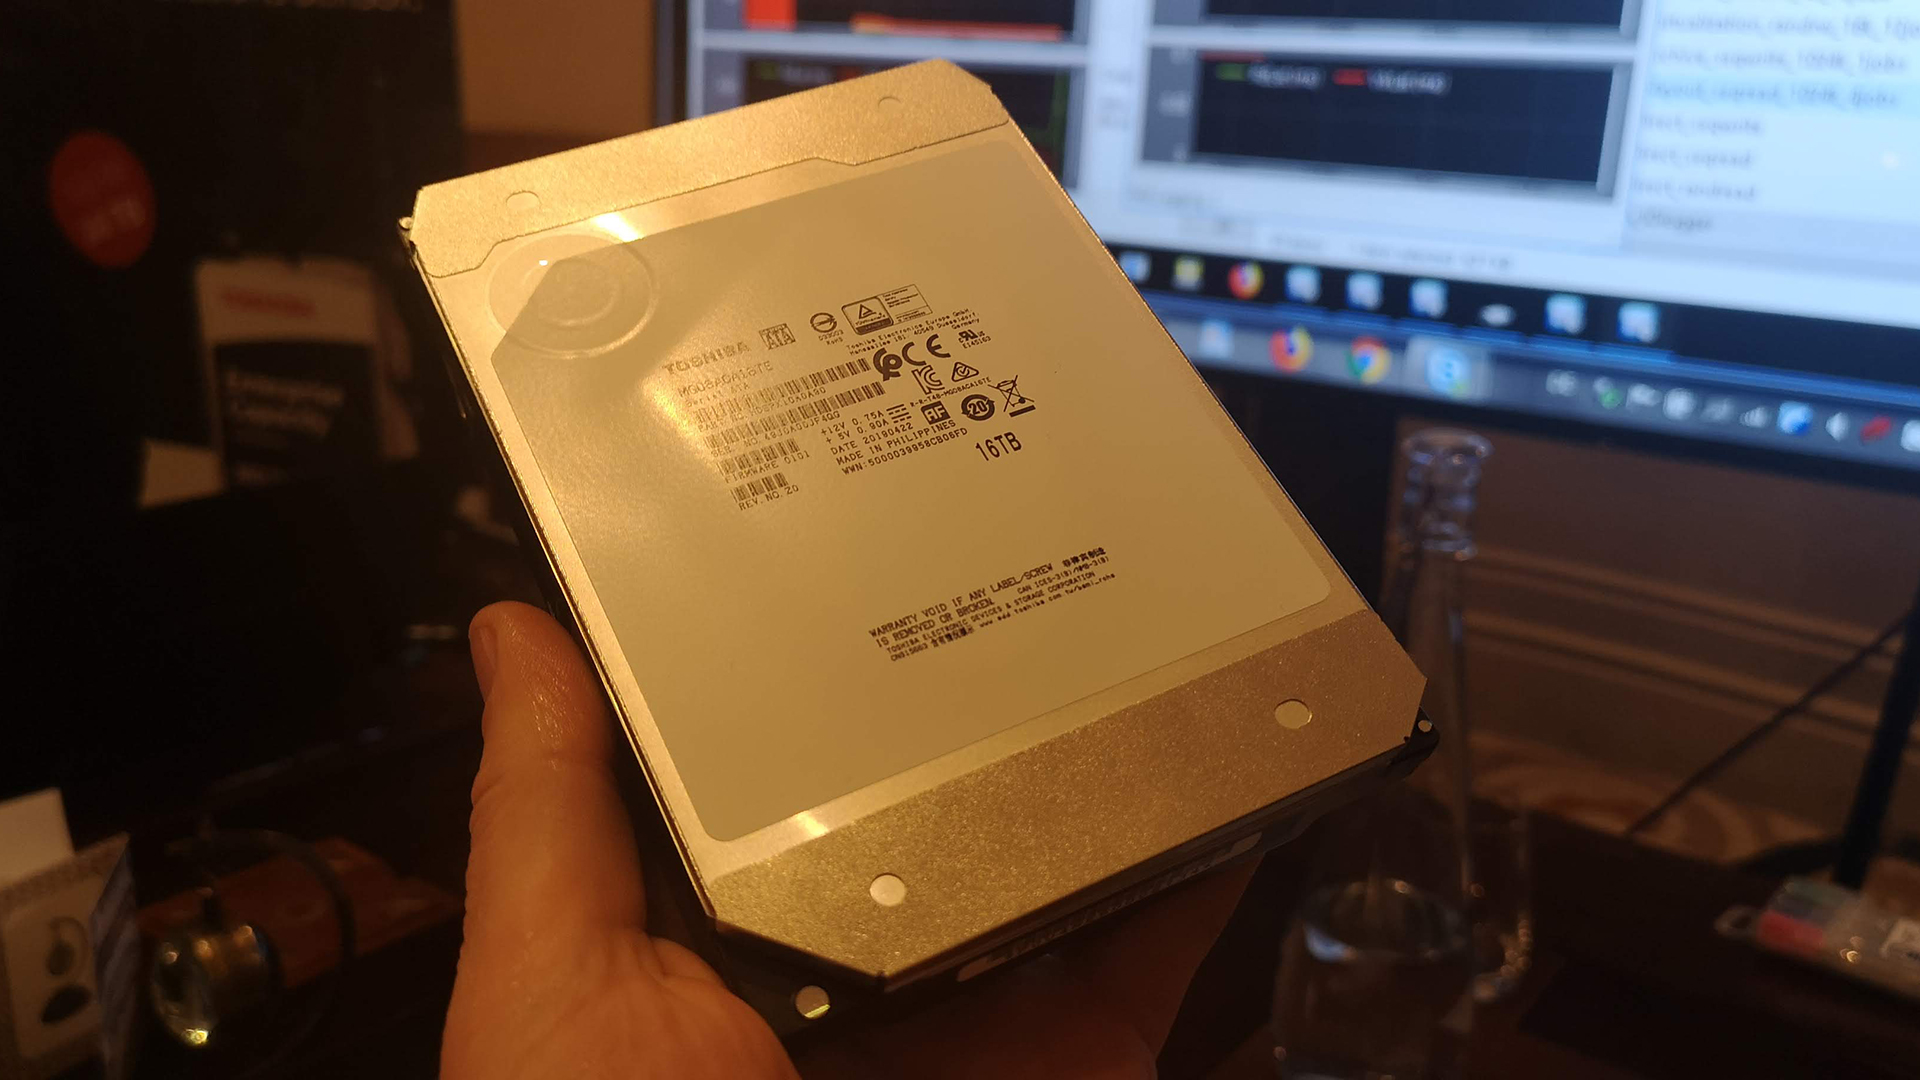 Close encounter with a 16TB HDD: Meet the Toshiba MG08 HDD